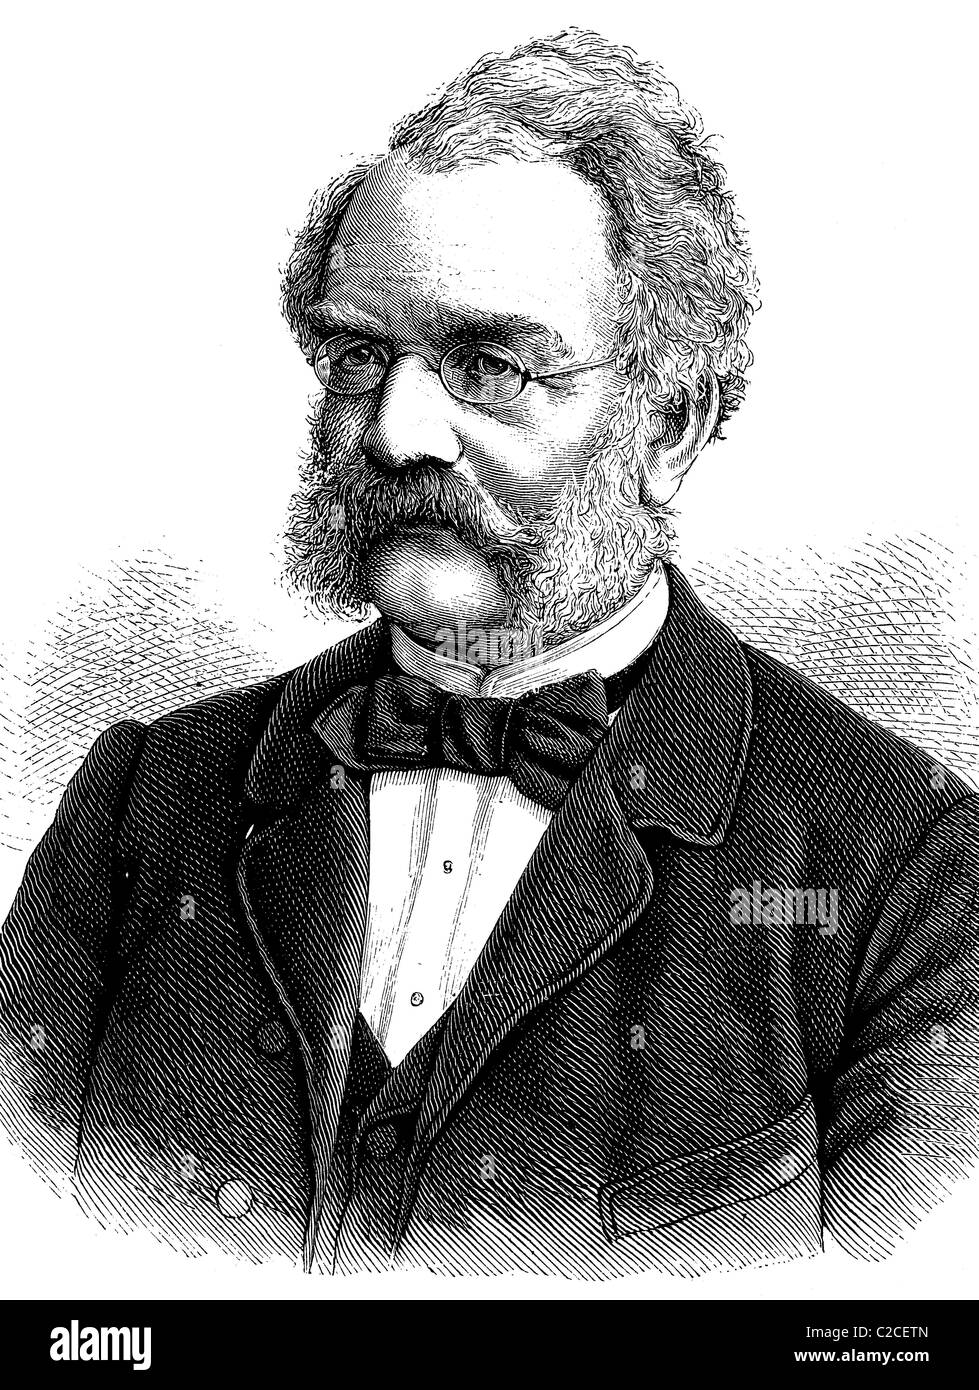 Werner von Siemens, 1816 - 1892, inventor, founder of electrical engineering and founder of Siemens AG, historical - Stock Image